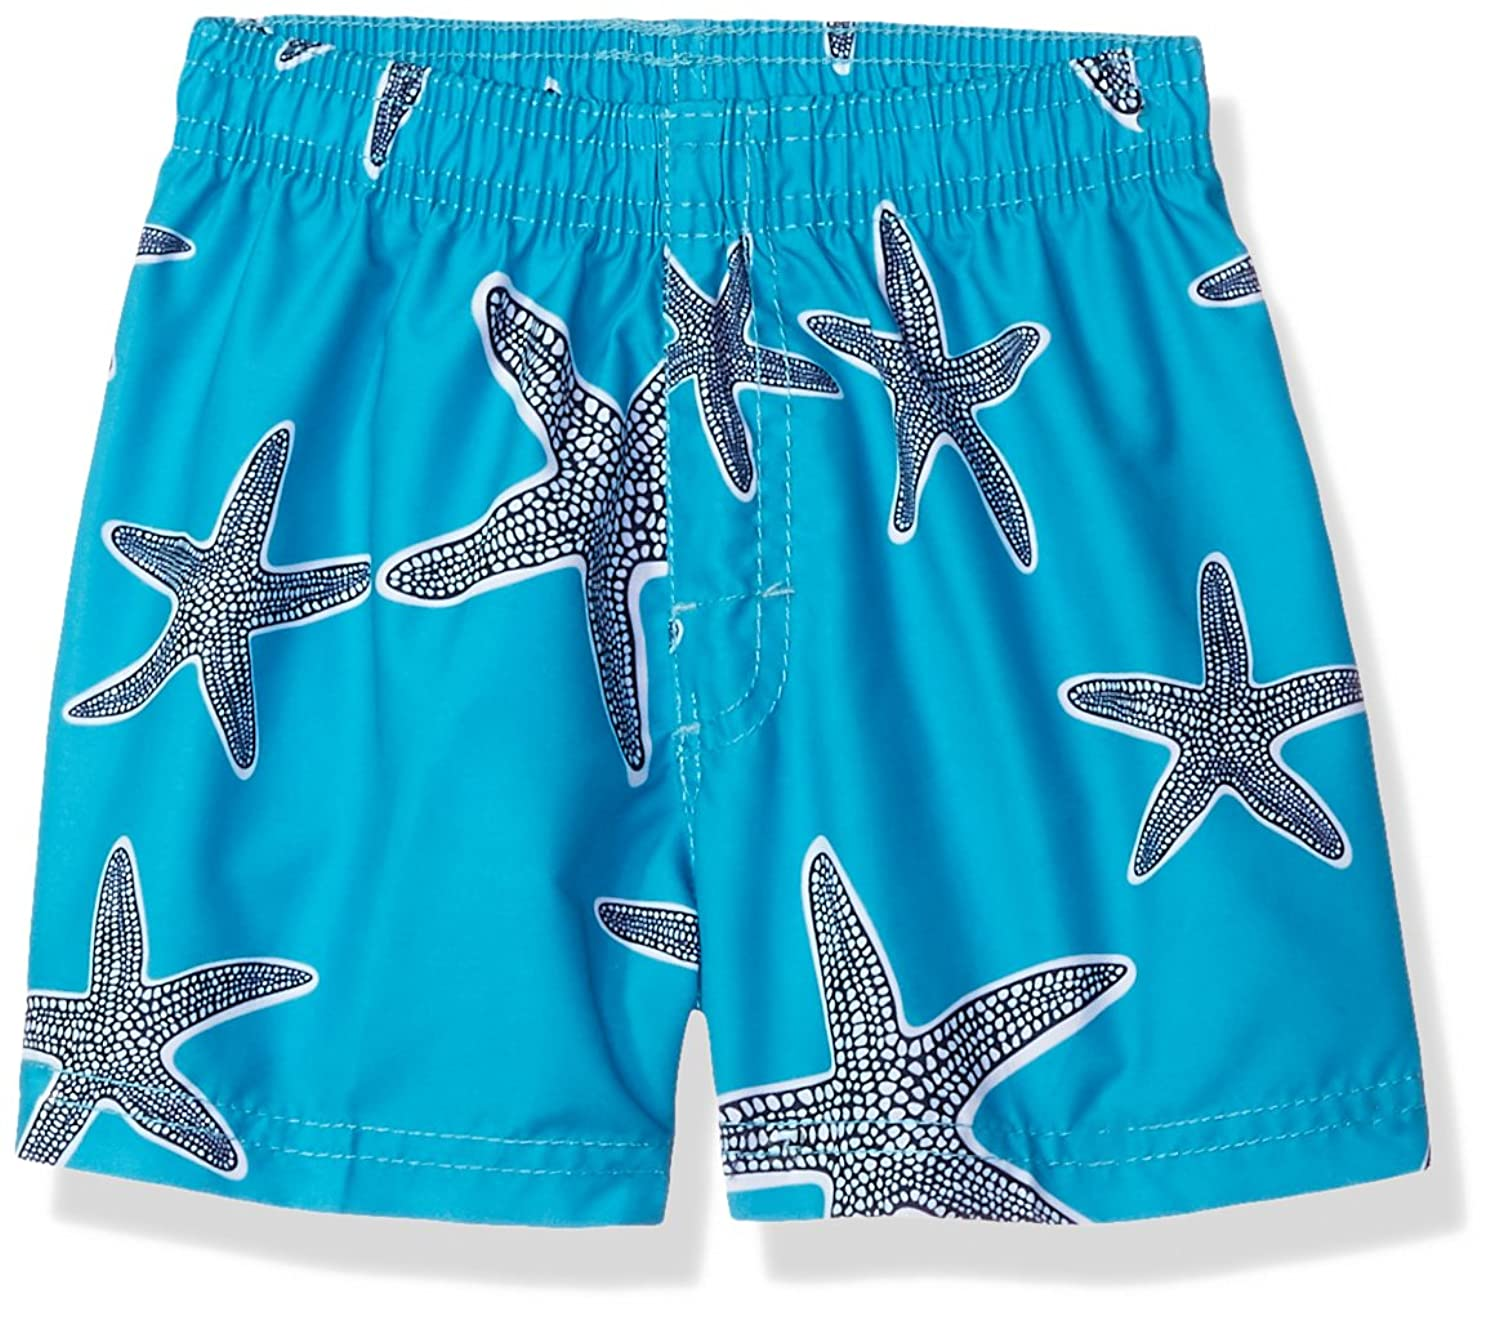 bdd5ffeb49 Kanu Surf presents our newest swim trunks yet. Whether headed to the beach  or the pool or just lounging around on a hot day, Kanu Surf, a surf and swim  ...